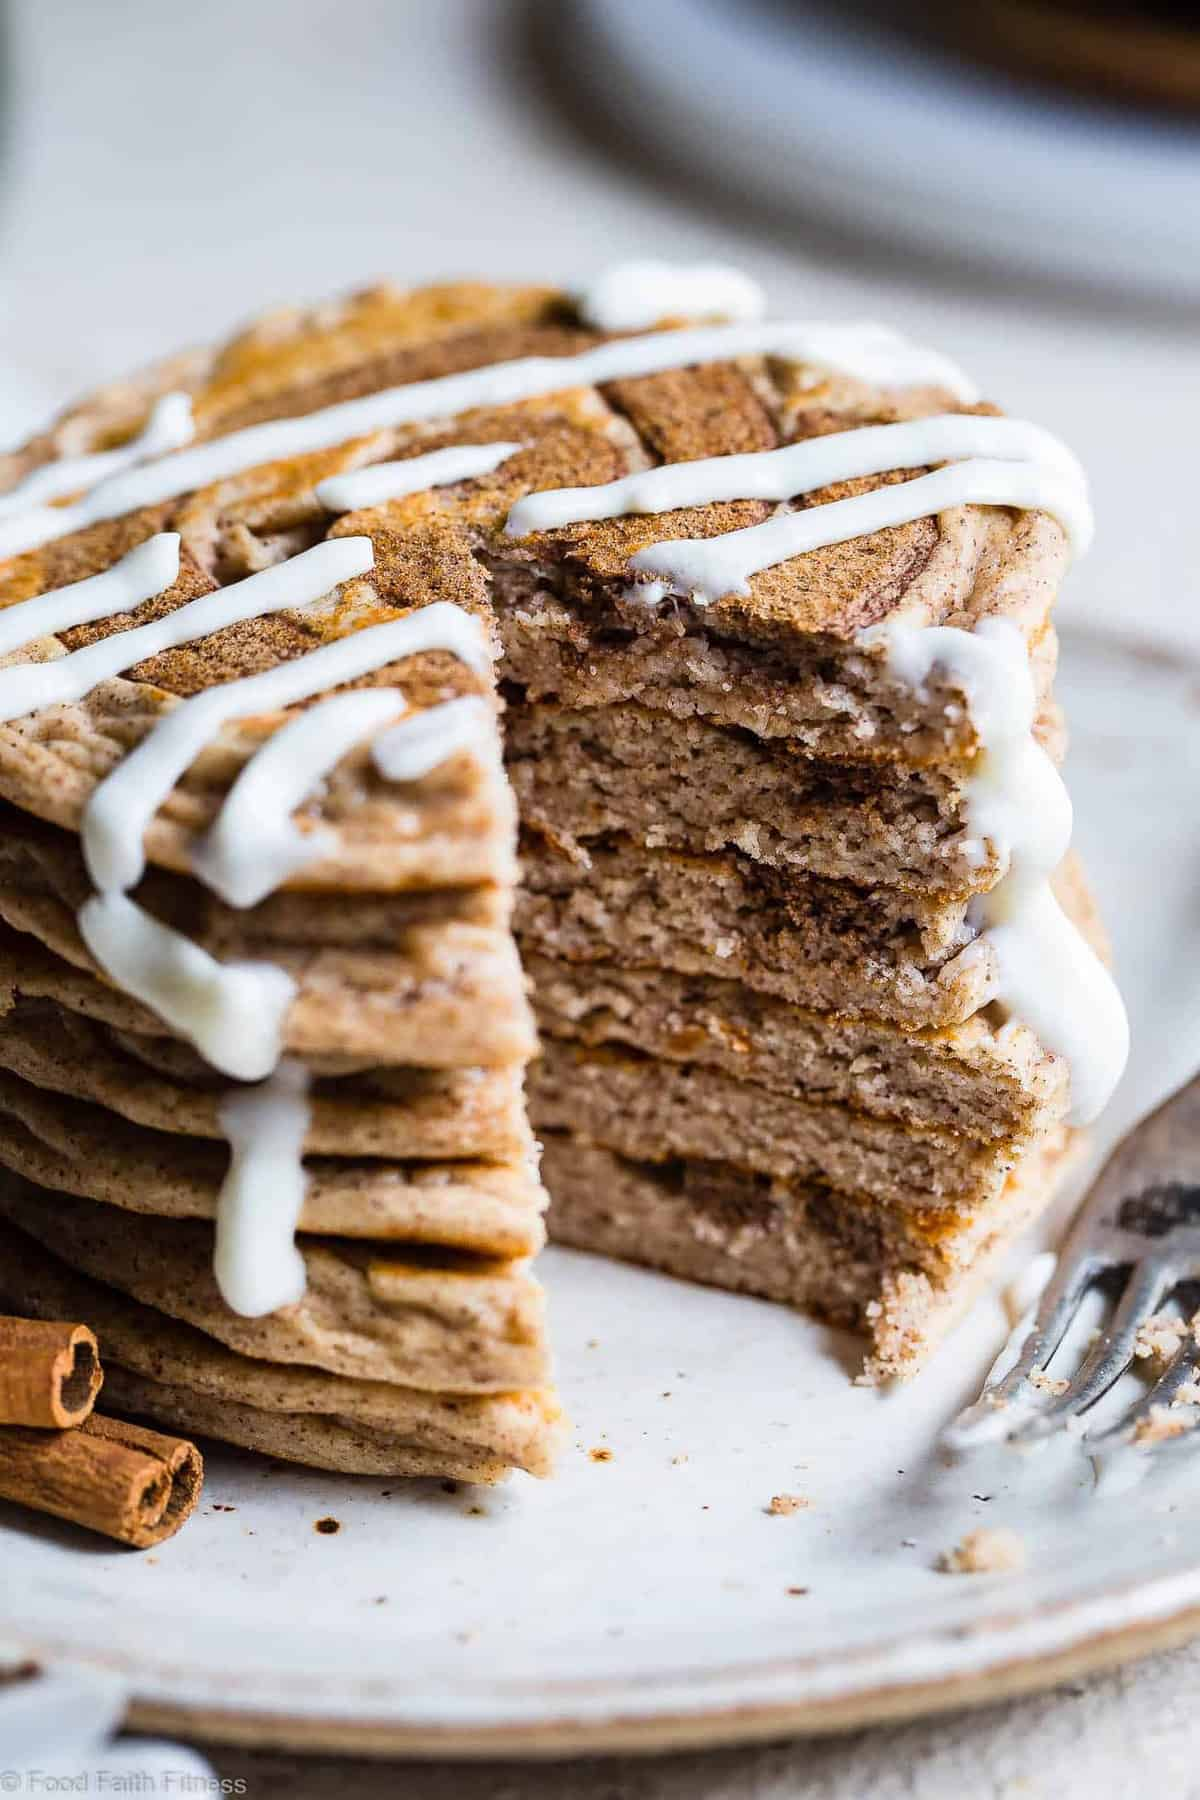 Cinnamon Roll Keto Protein Pancakes -This EASY, low carb, gluten free protein pancakes recipe is going to be your new favorite breakfast! Great for kids and adults and packed with 23g of protein!Who doesn't want to wake up to healthy cinnamon rolls?! | #Foodfaithfitness | #Keto #Lowcarb #Glutenfree #Healthy #Pancakes